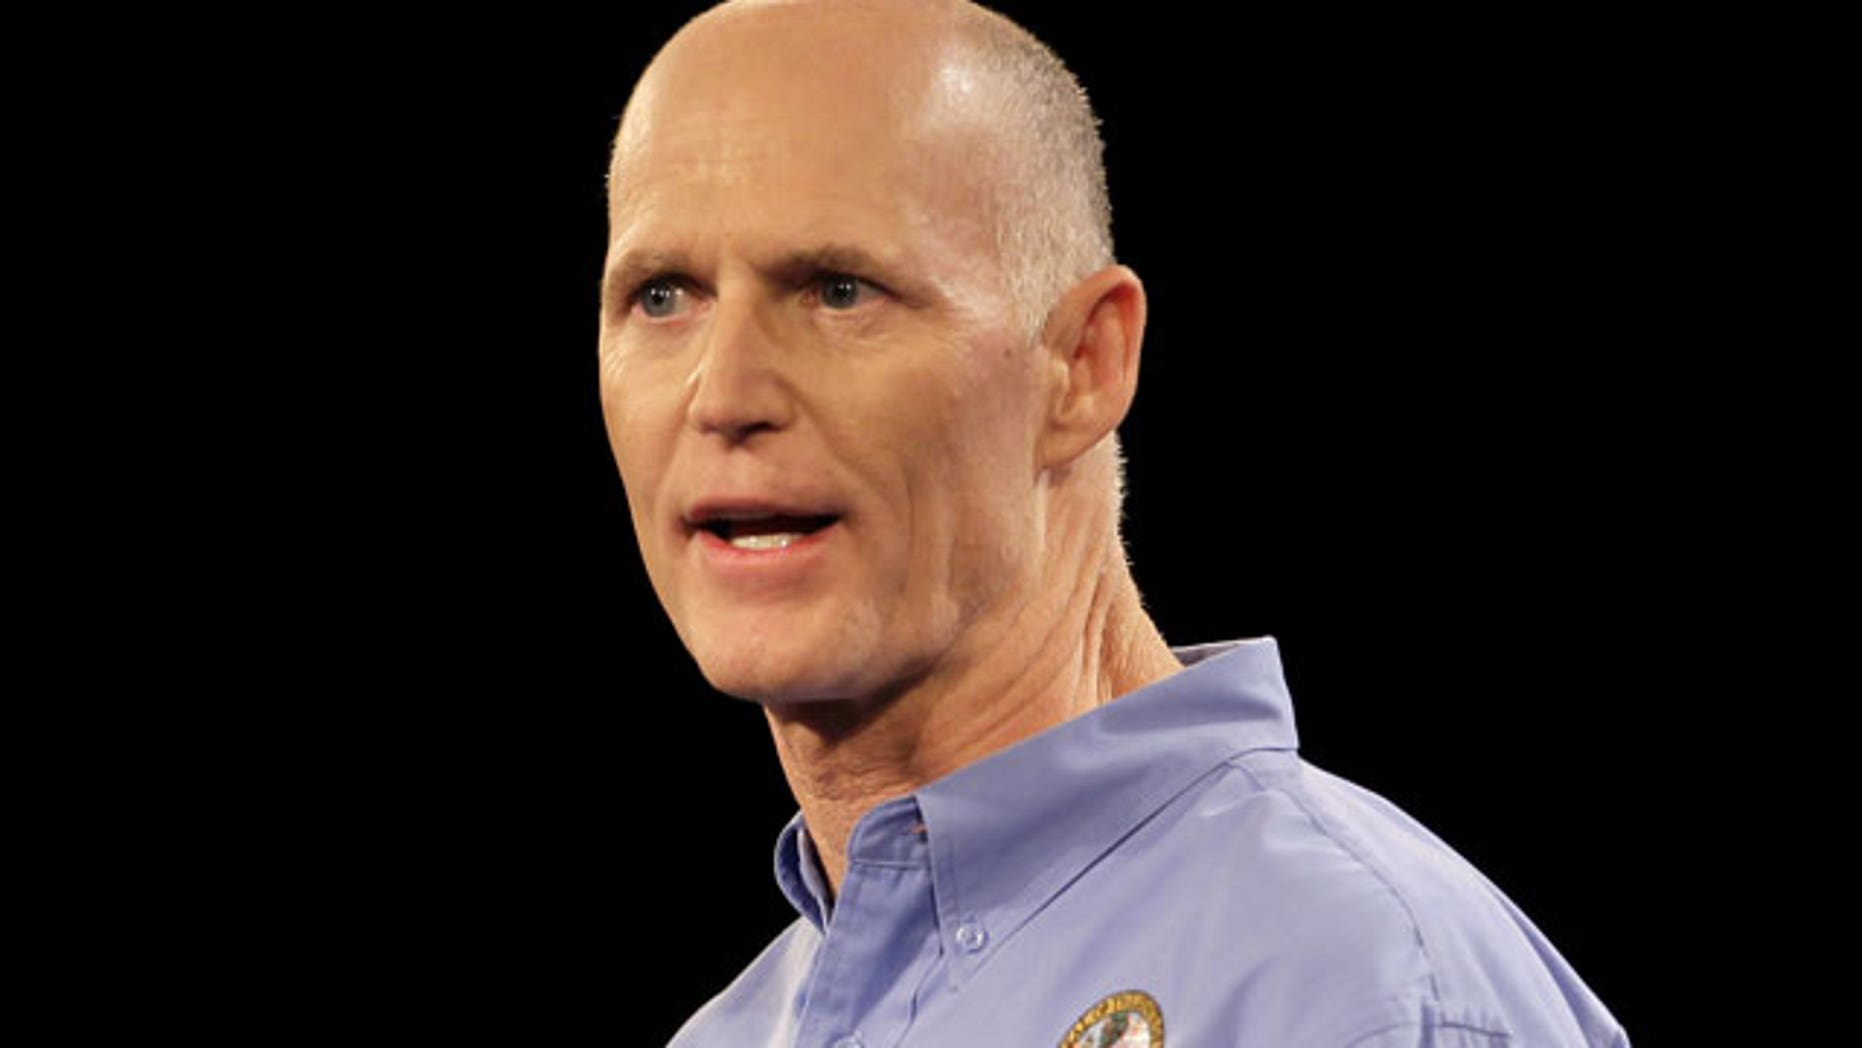 In this Saturday, Sept 24, 2011, photo, Florida Gov. Rick Scott delivers his keynote address at a Florida Republican Party Presidency 5 Convention in Orlando, Fla. A federal judge temporarily blocked Florida's new law that requires welfare applicants to pass a drug test before receiving the benefits. Gov. Rick Scott is a proponent of the law.